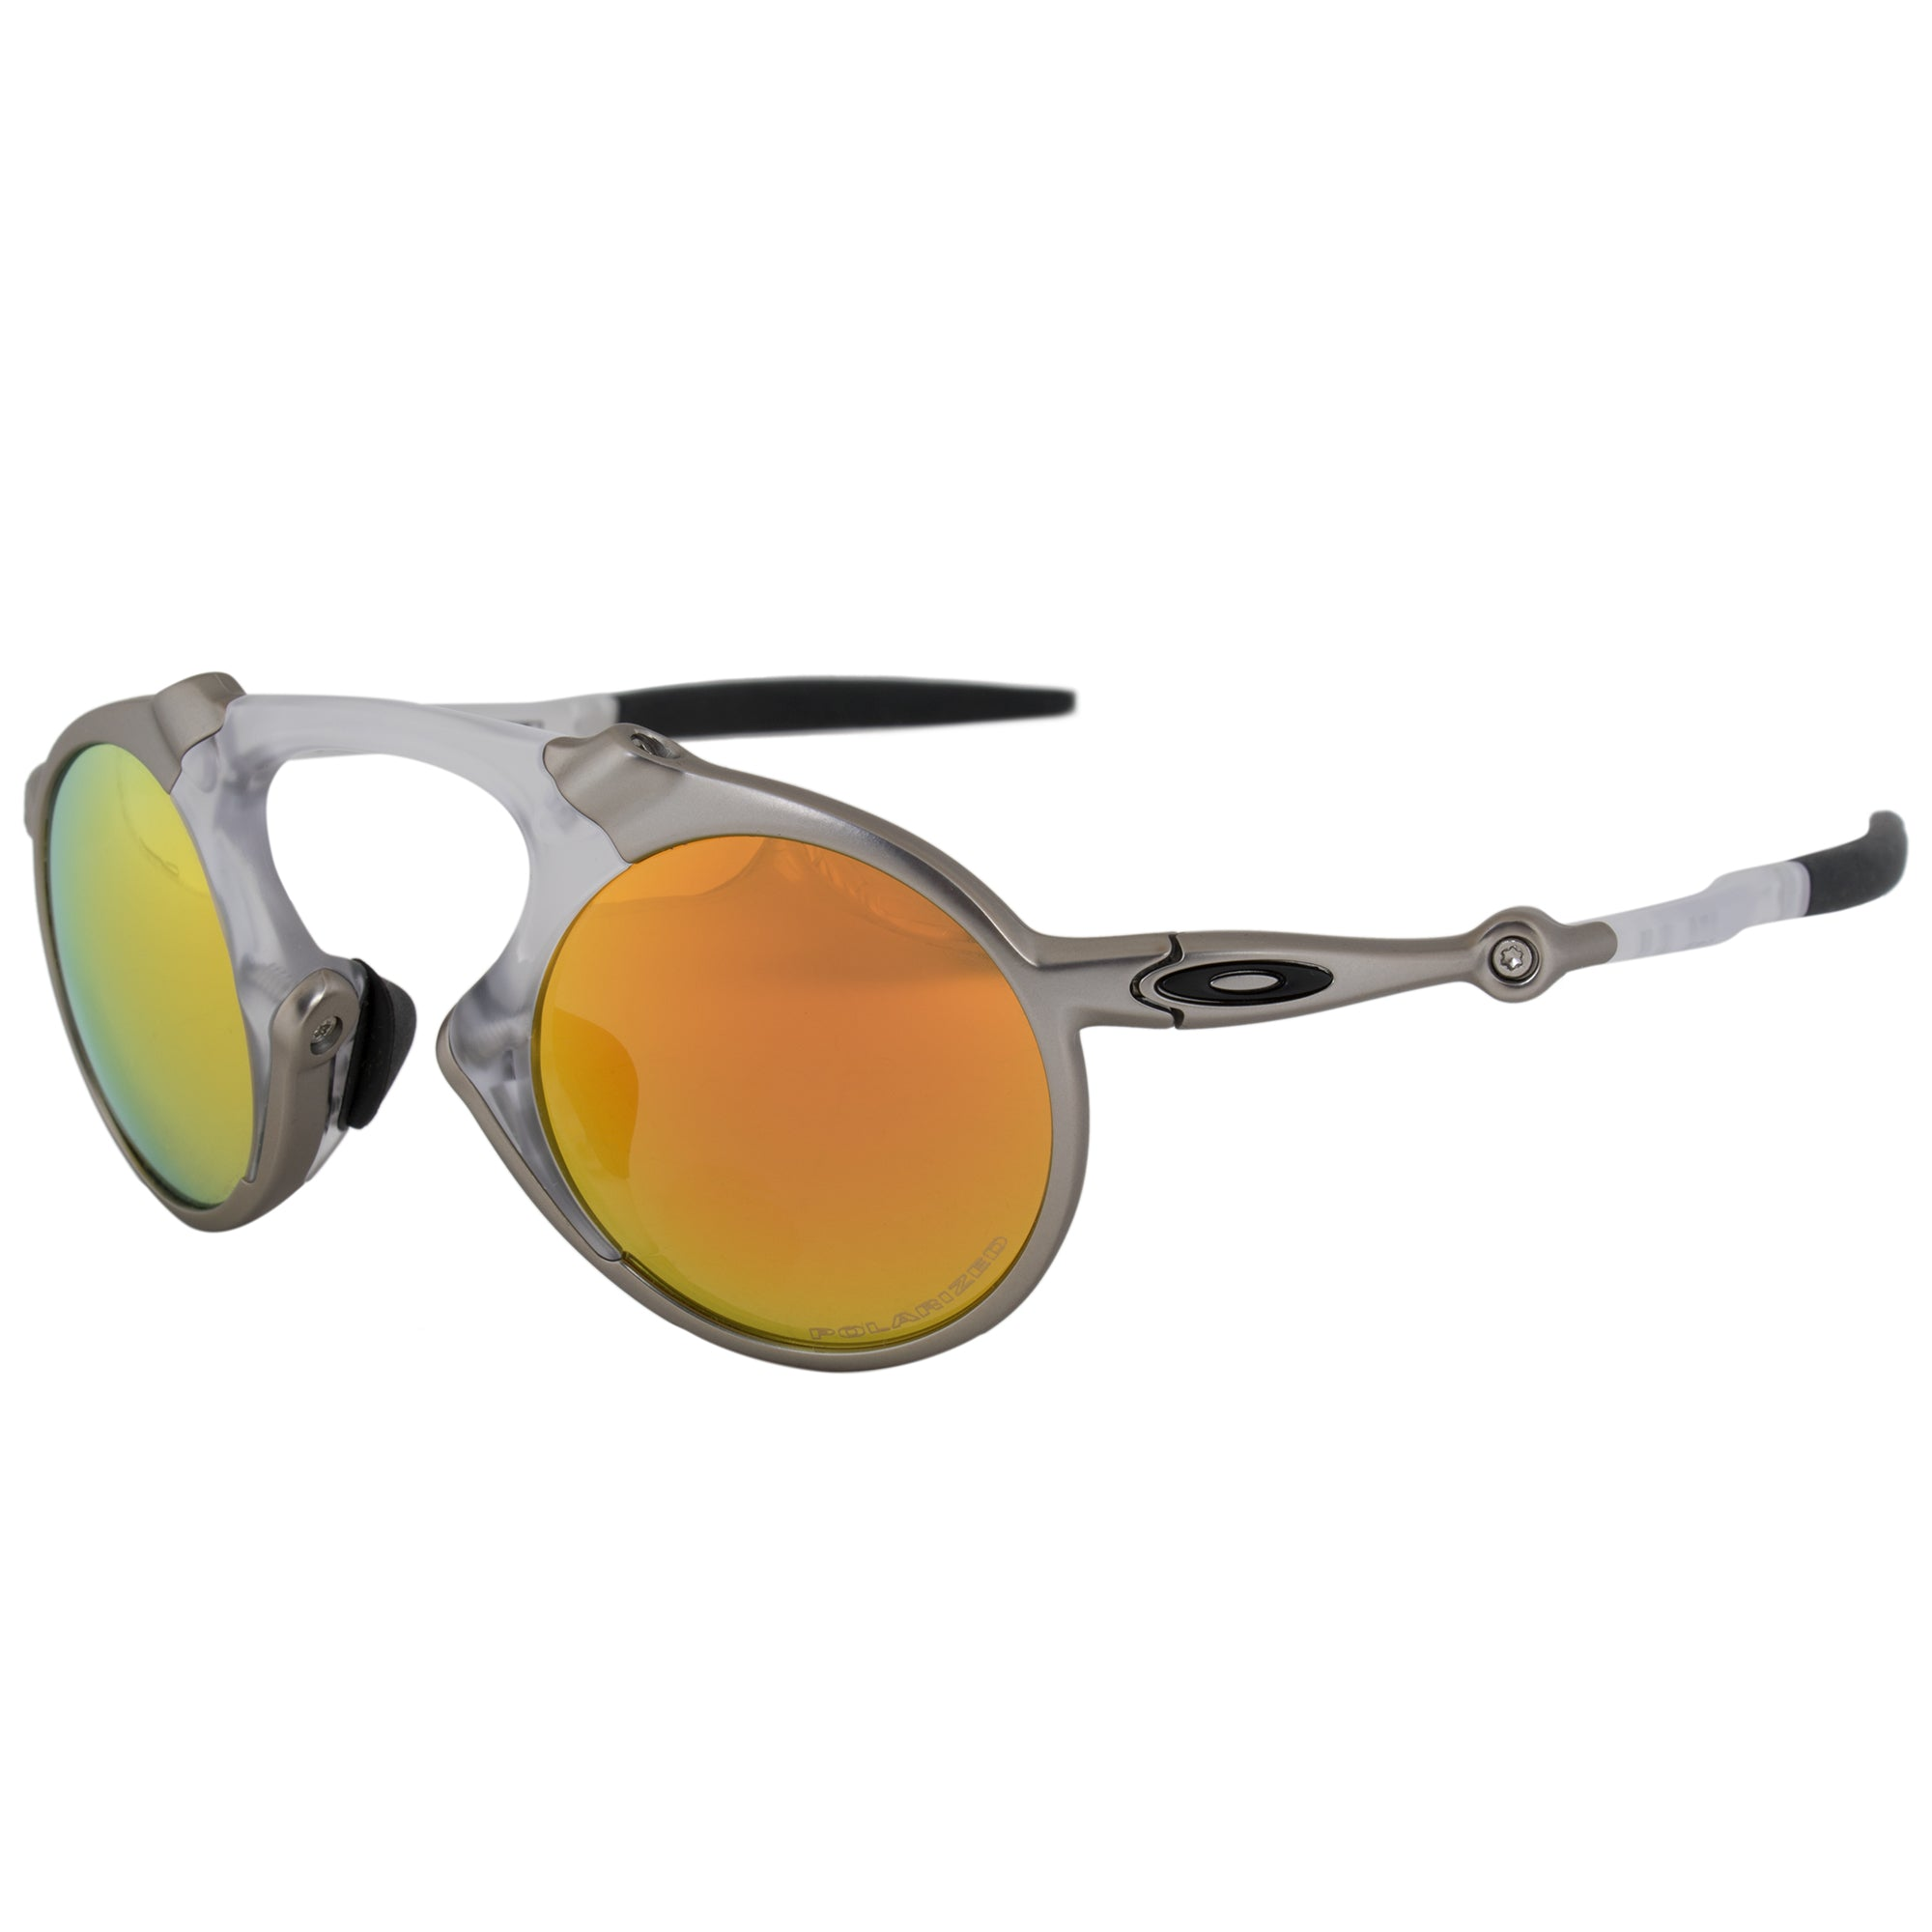 Oakley Madman Round Sunglasses 0OO6019 601907 41 POL | Translucent White and Silver Frame | Polarized Fire Iridium Lense